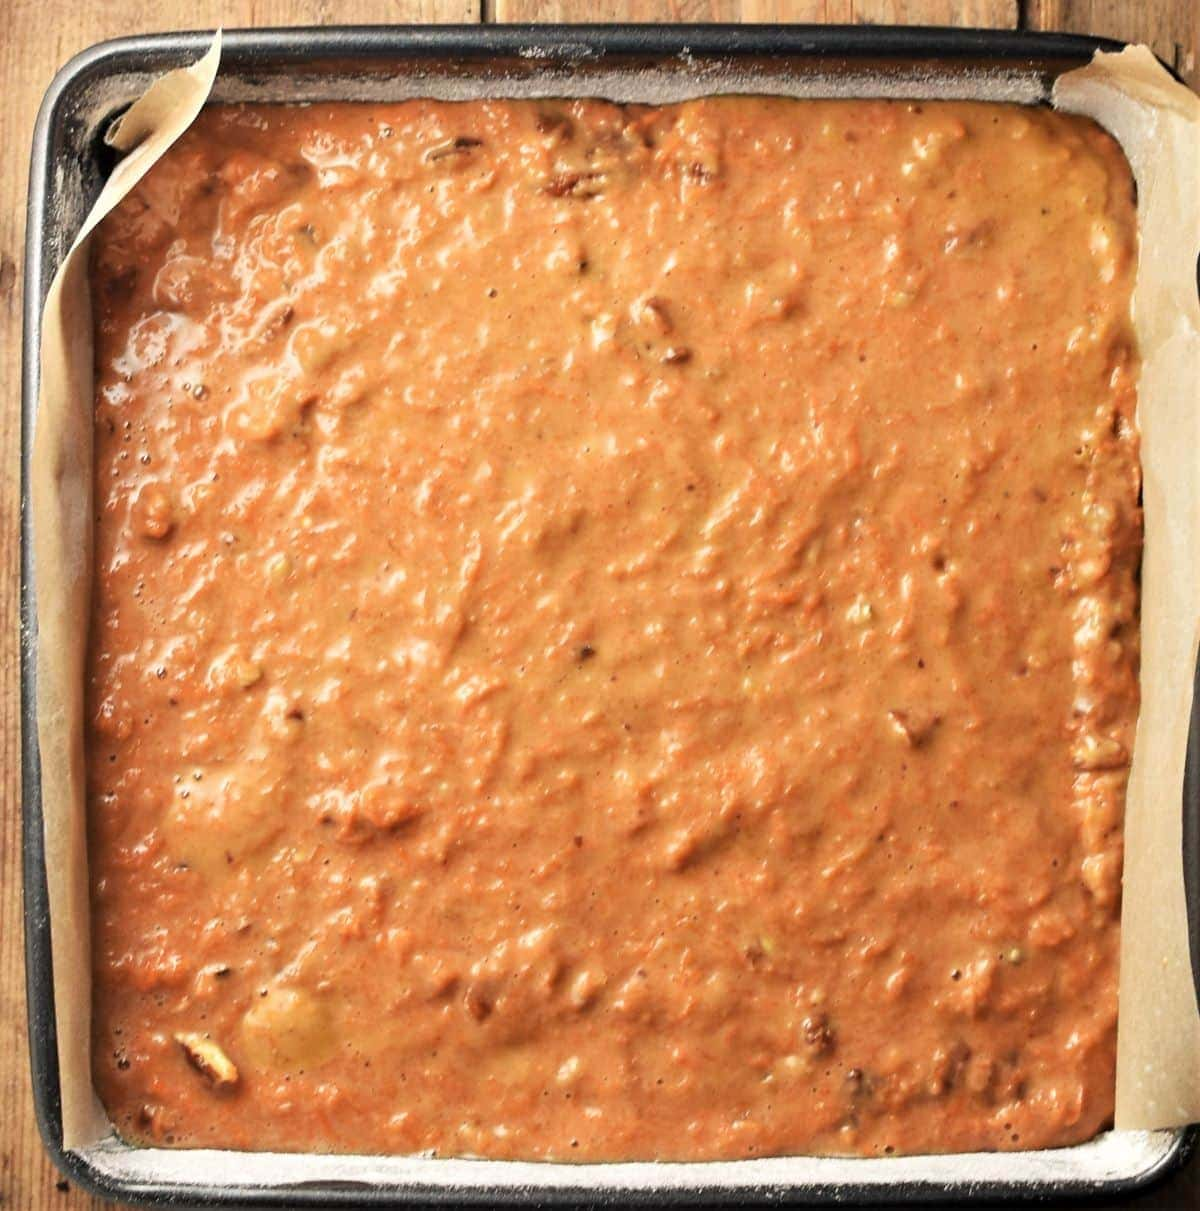 Carrot cake batter in square pan.